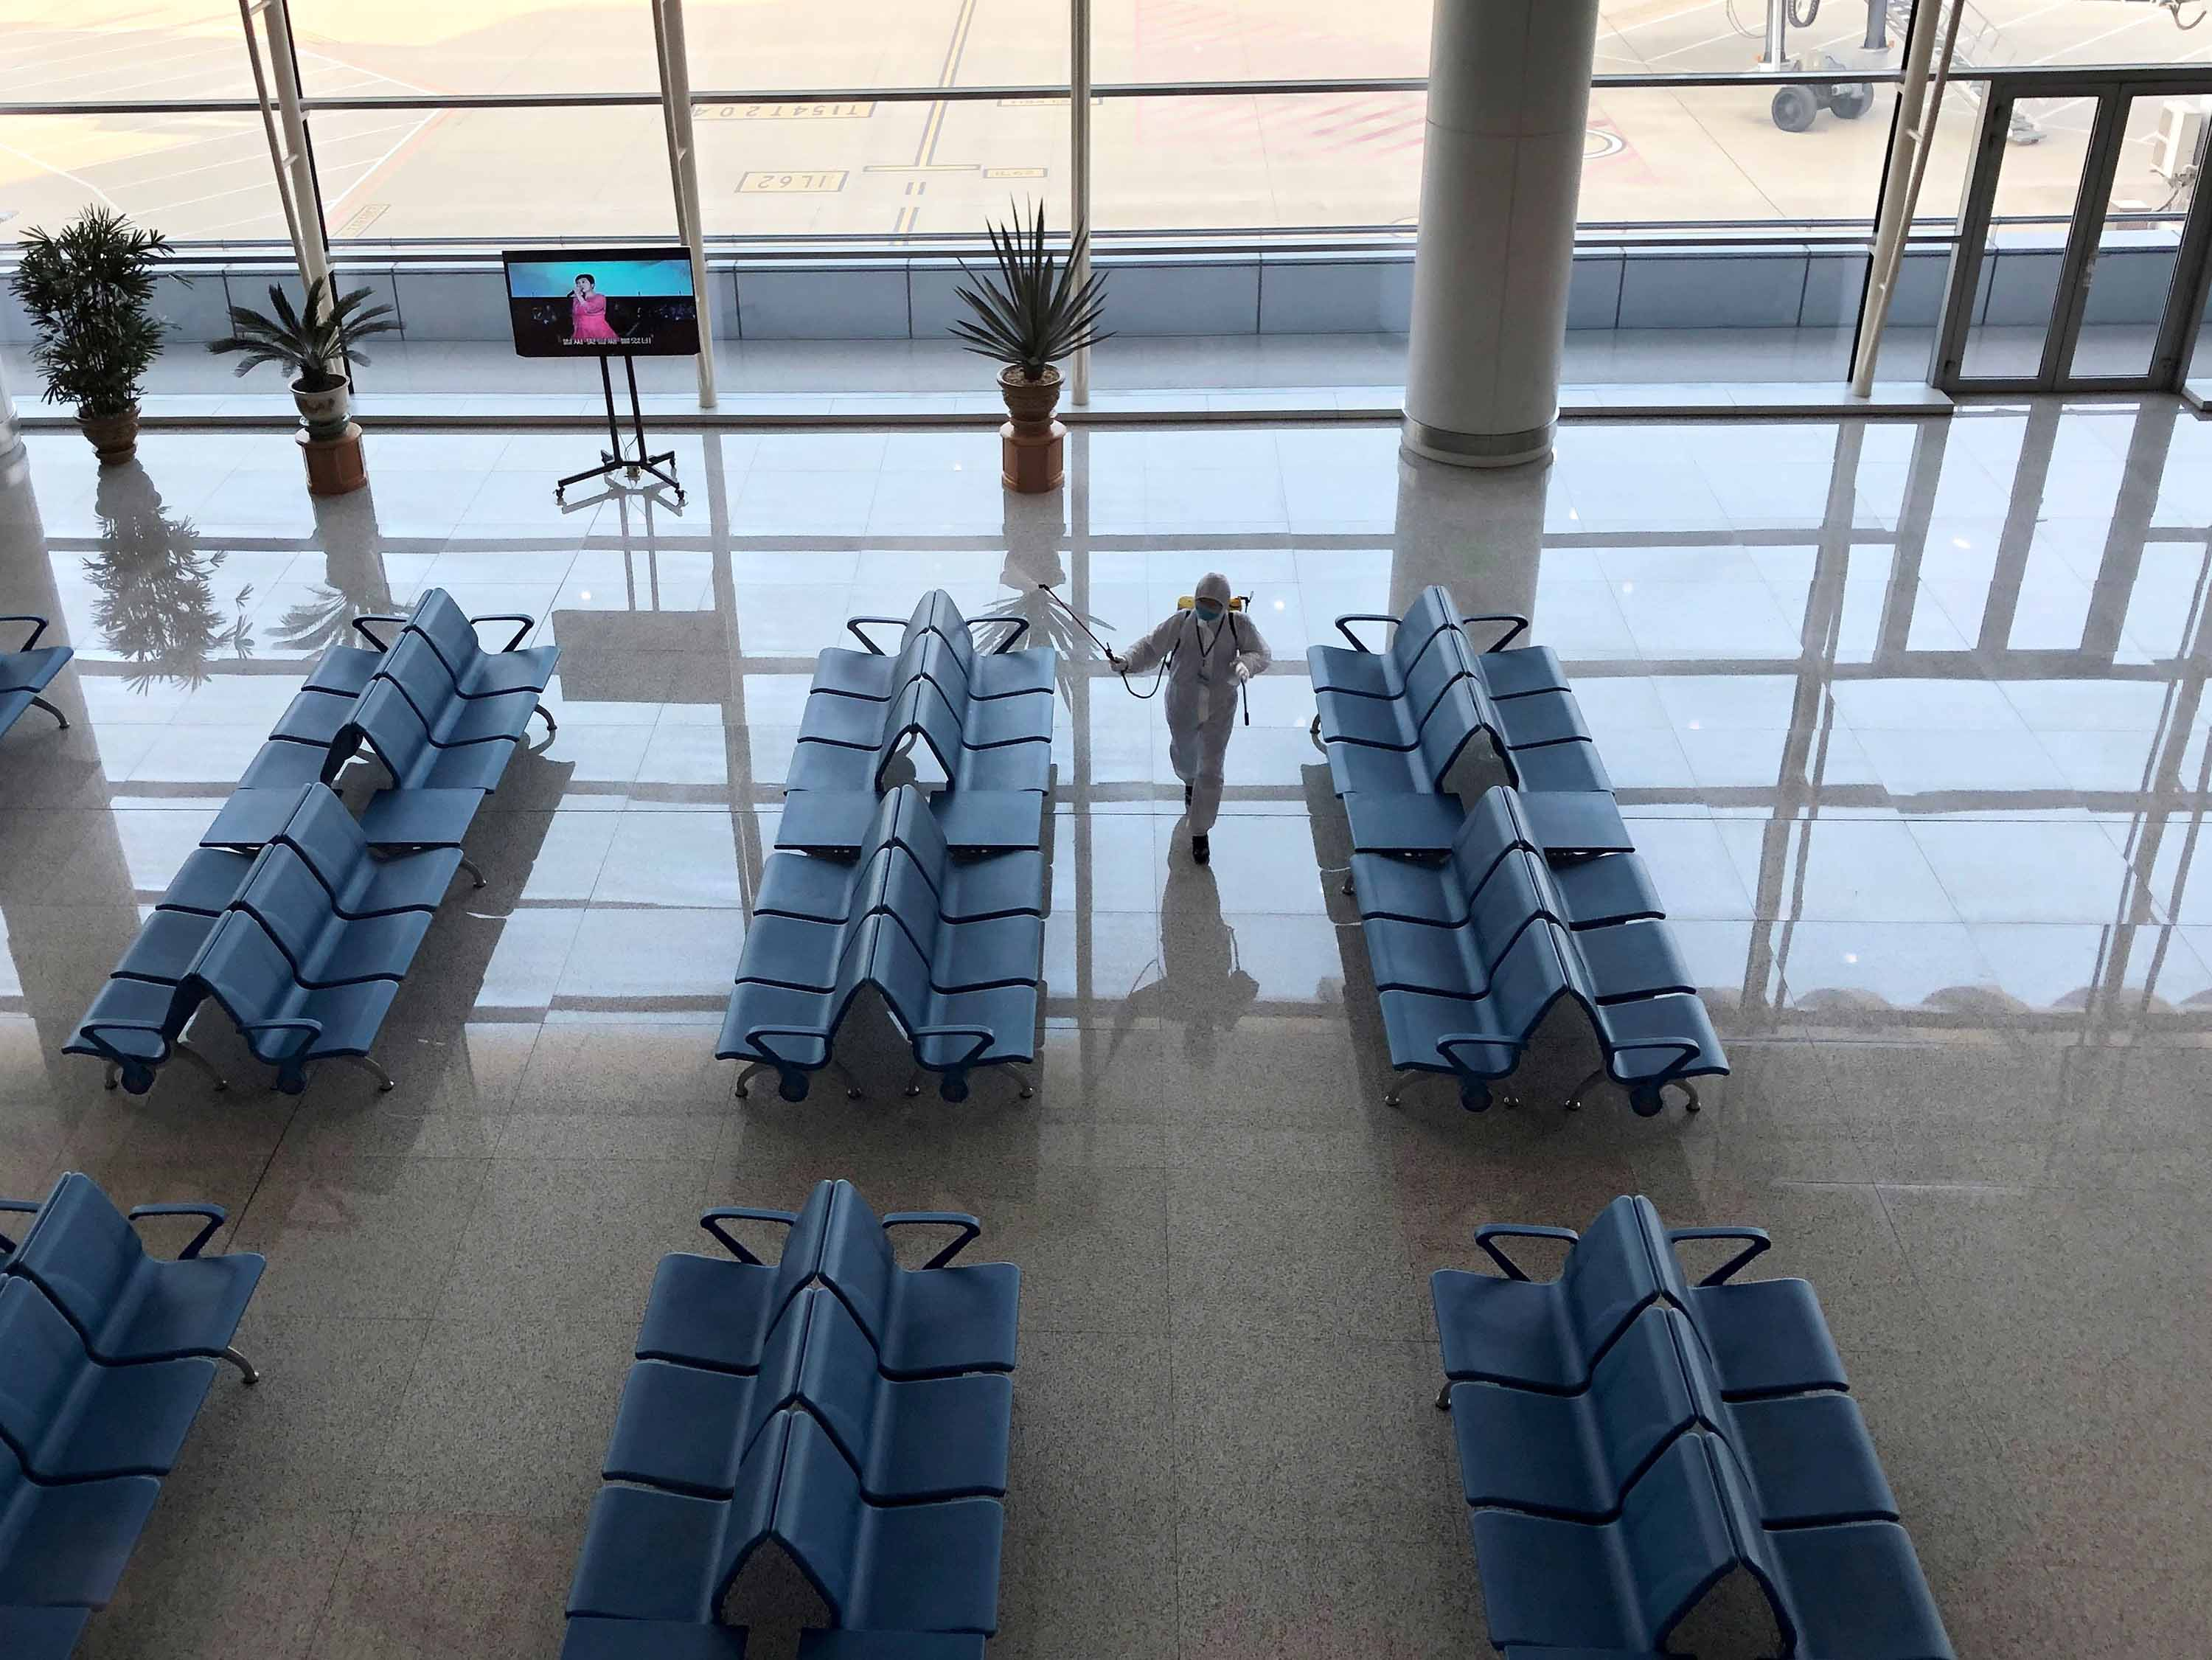 An employee disinfects an area at Pyongyang International Airport in Pyongyang, North Korea, on Monday.